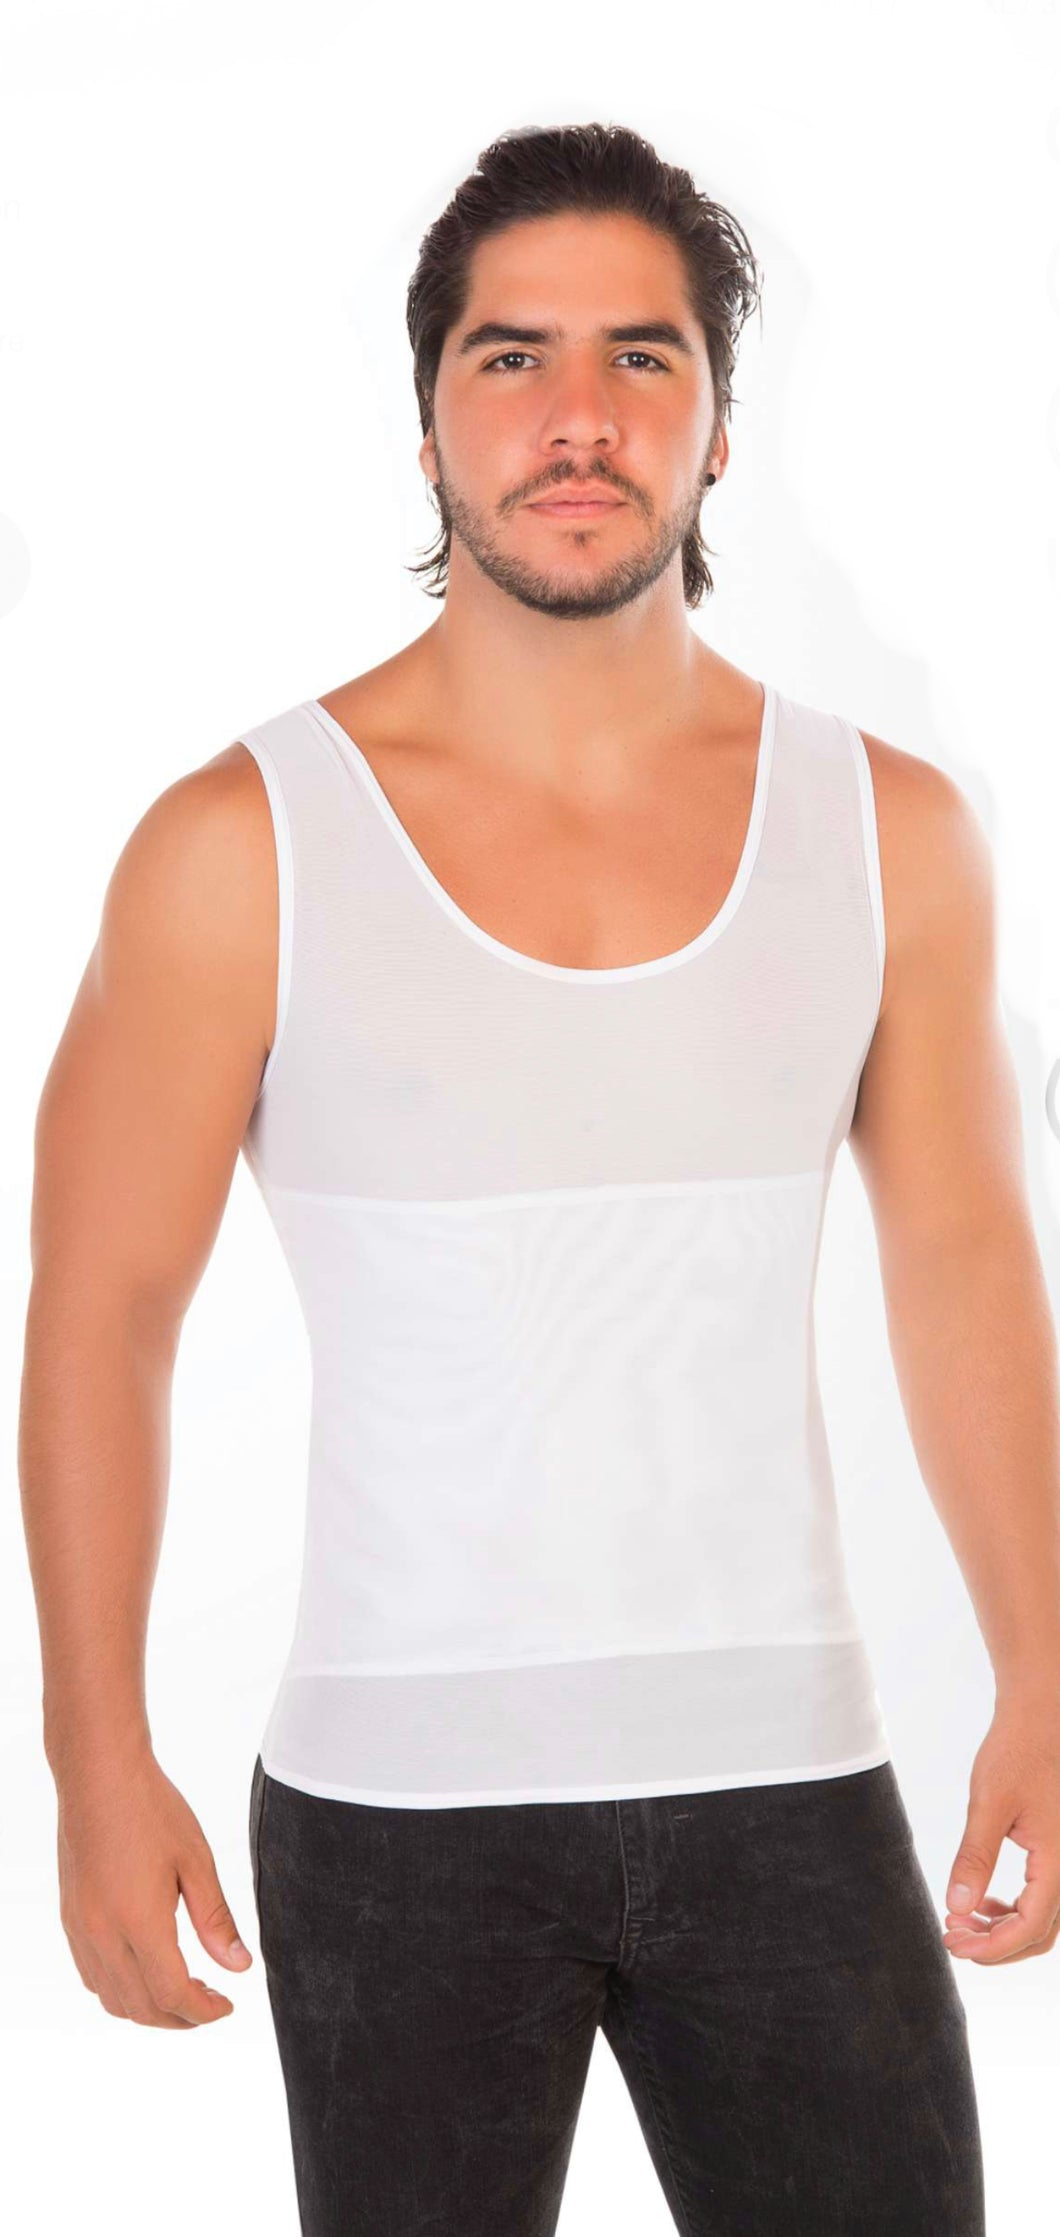 Shirt for men high compression Ref: 751